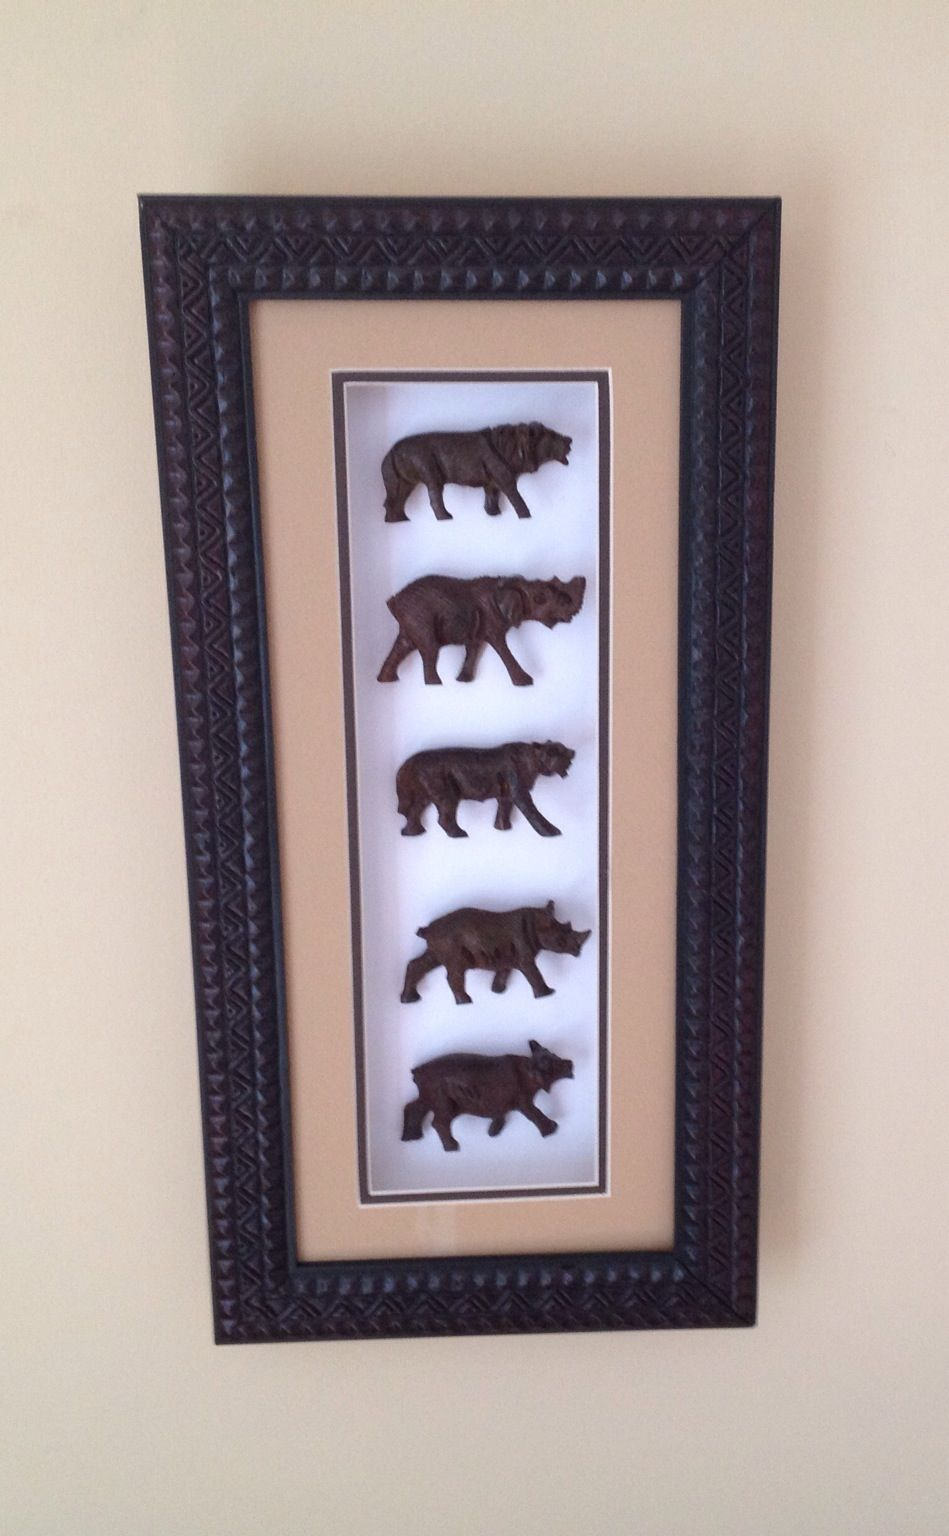 Wood Carvings in Shadow Box Frame - Big 5 Animals: Rustic, Handmade Art. The Big Five are the Lion, the Elephant, the Leopard, the Rhinoceros, and the African Buffalo. This product has beige matting.